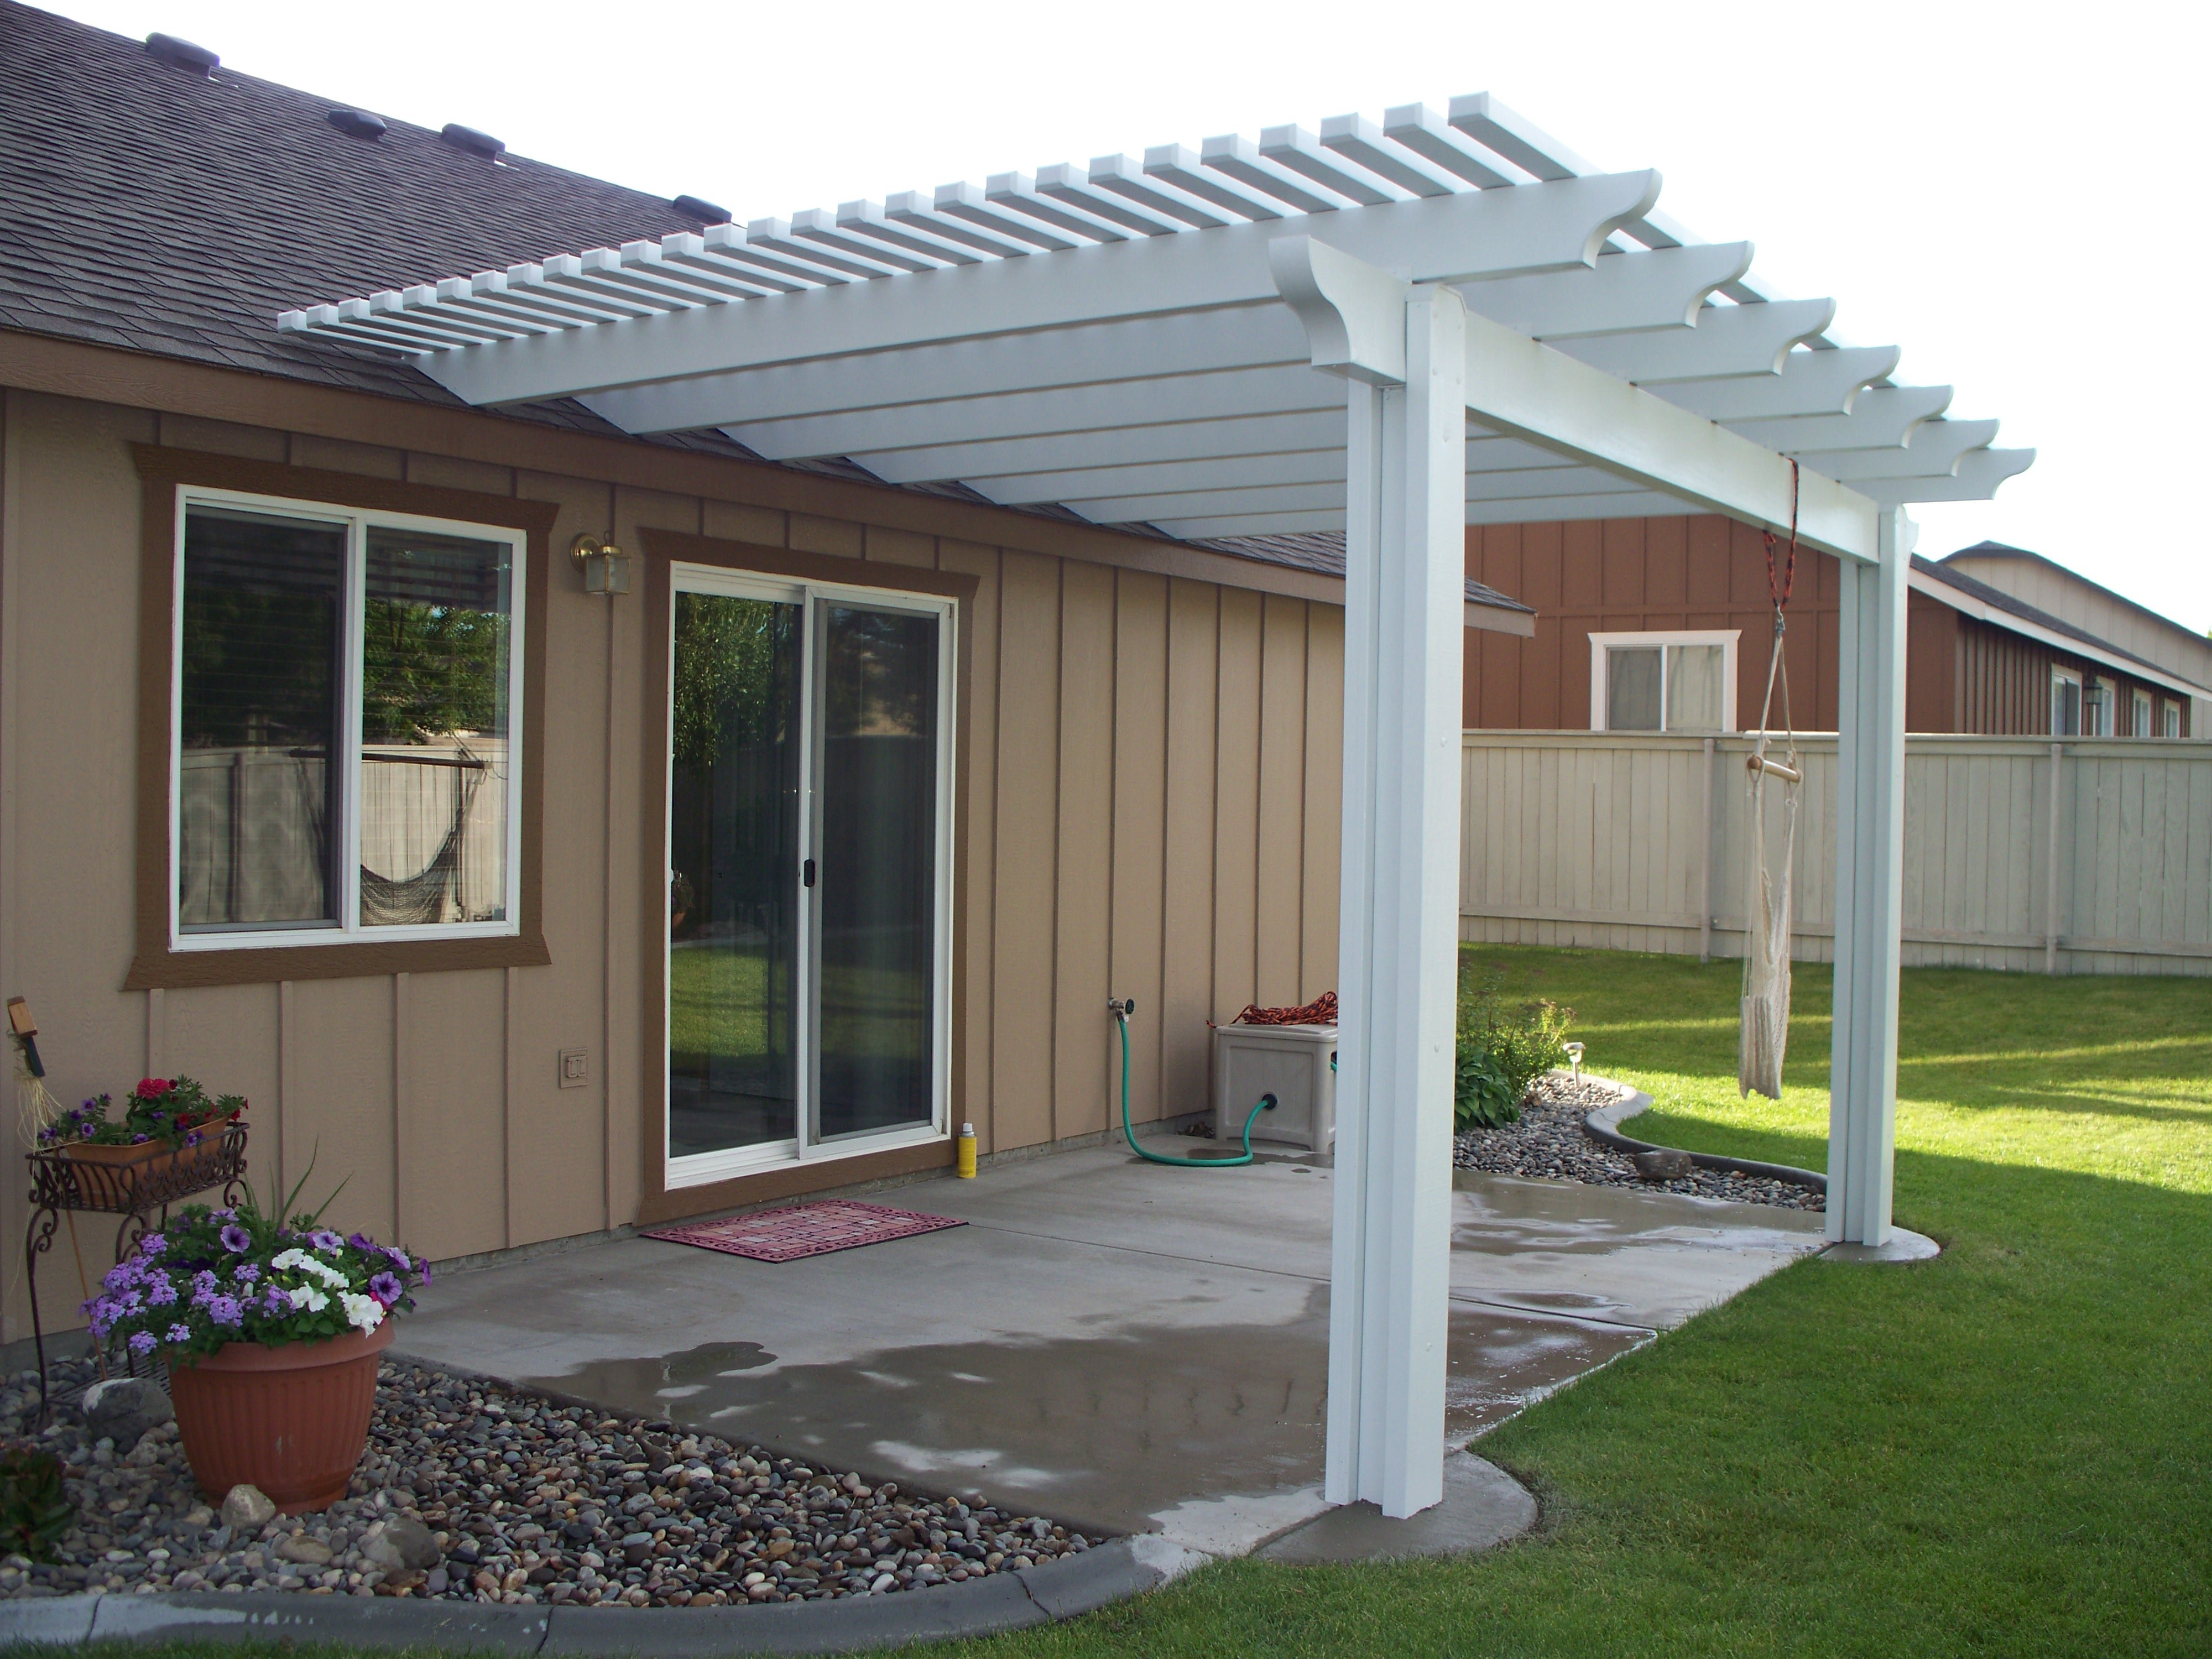 Attached Pergola To Roof Facebook